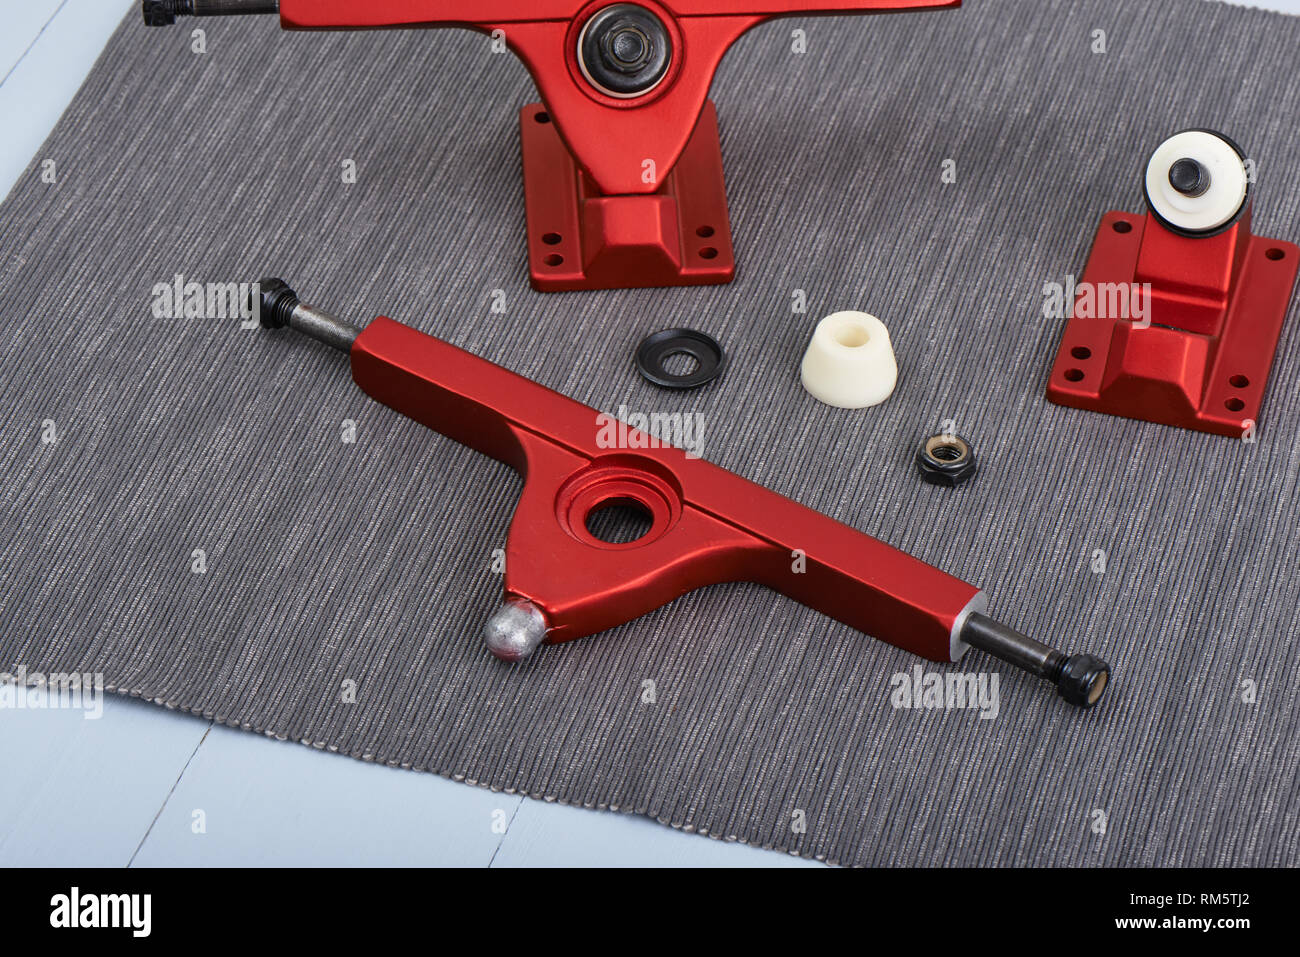 Longboard truck to support the long board and adjust the driving direction. - Stock Image